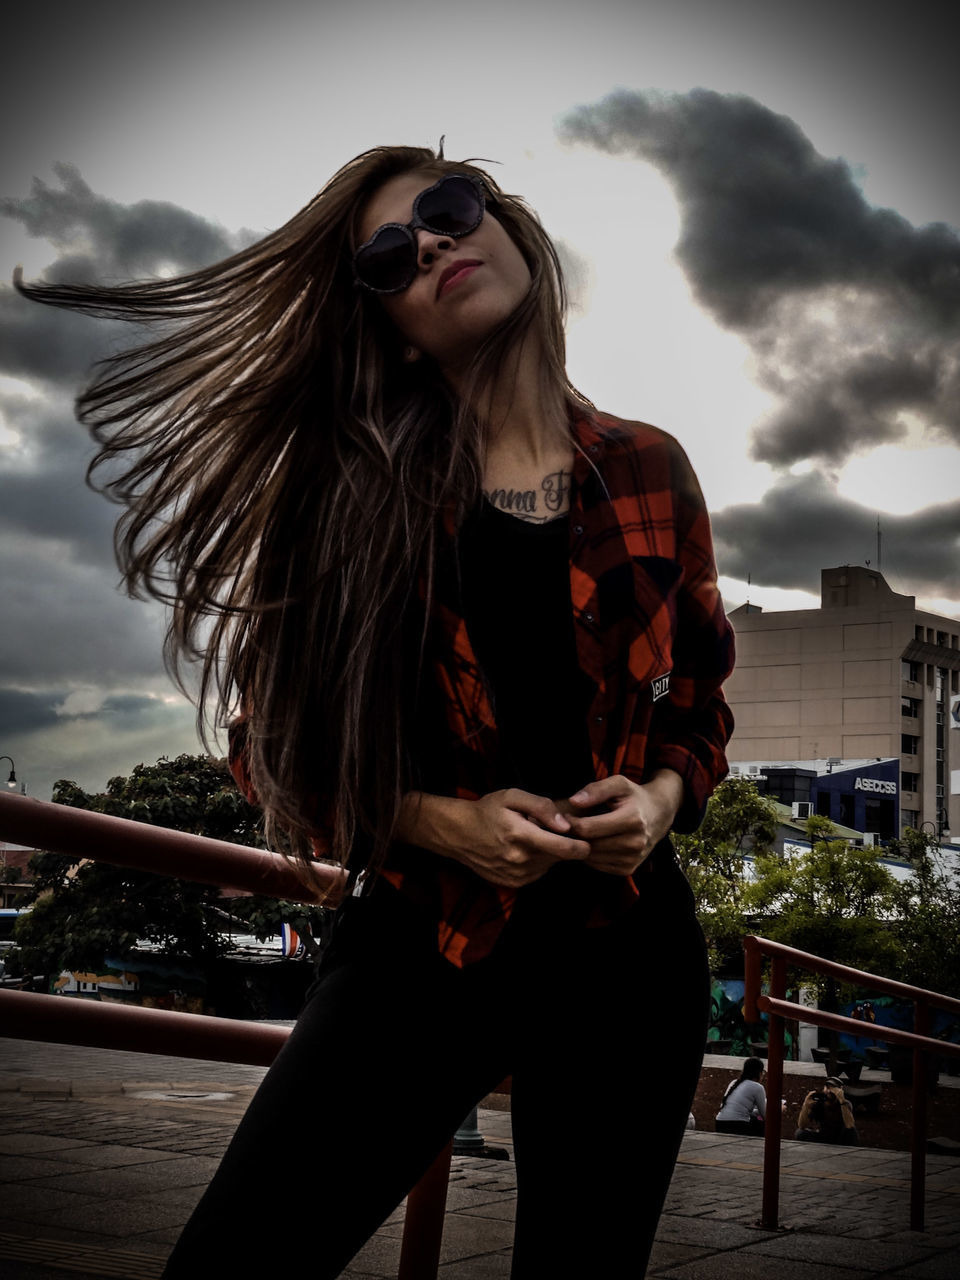 Young Woman With Tousled Hair Standing By Railing Against Cloudy Sky